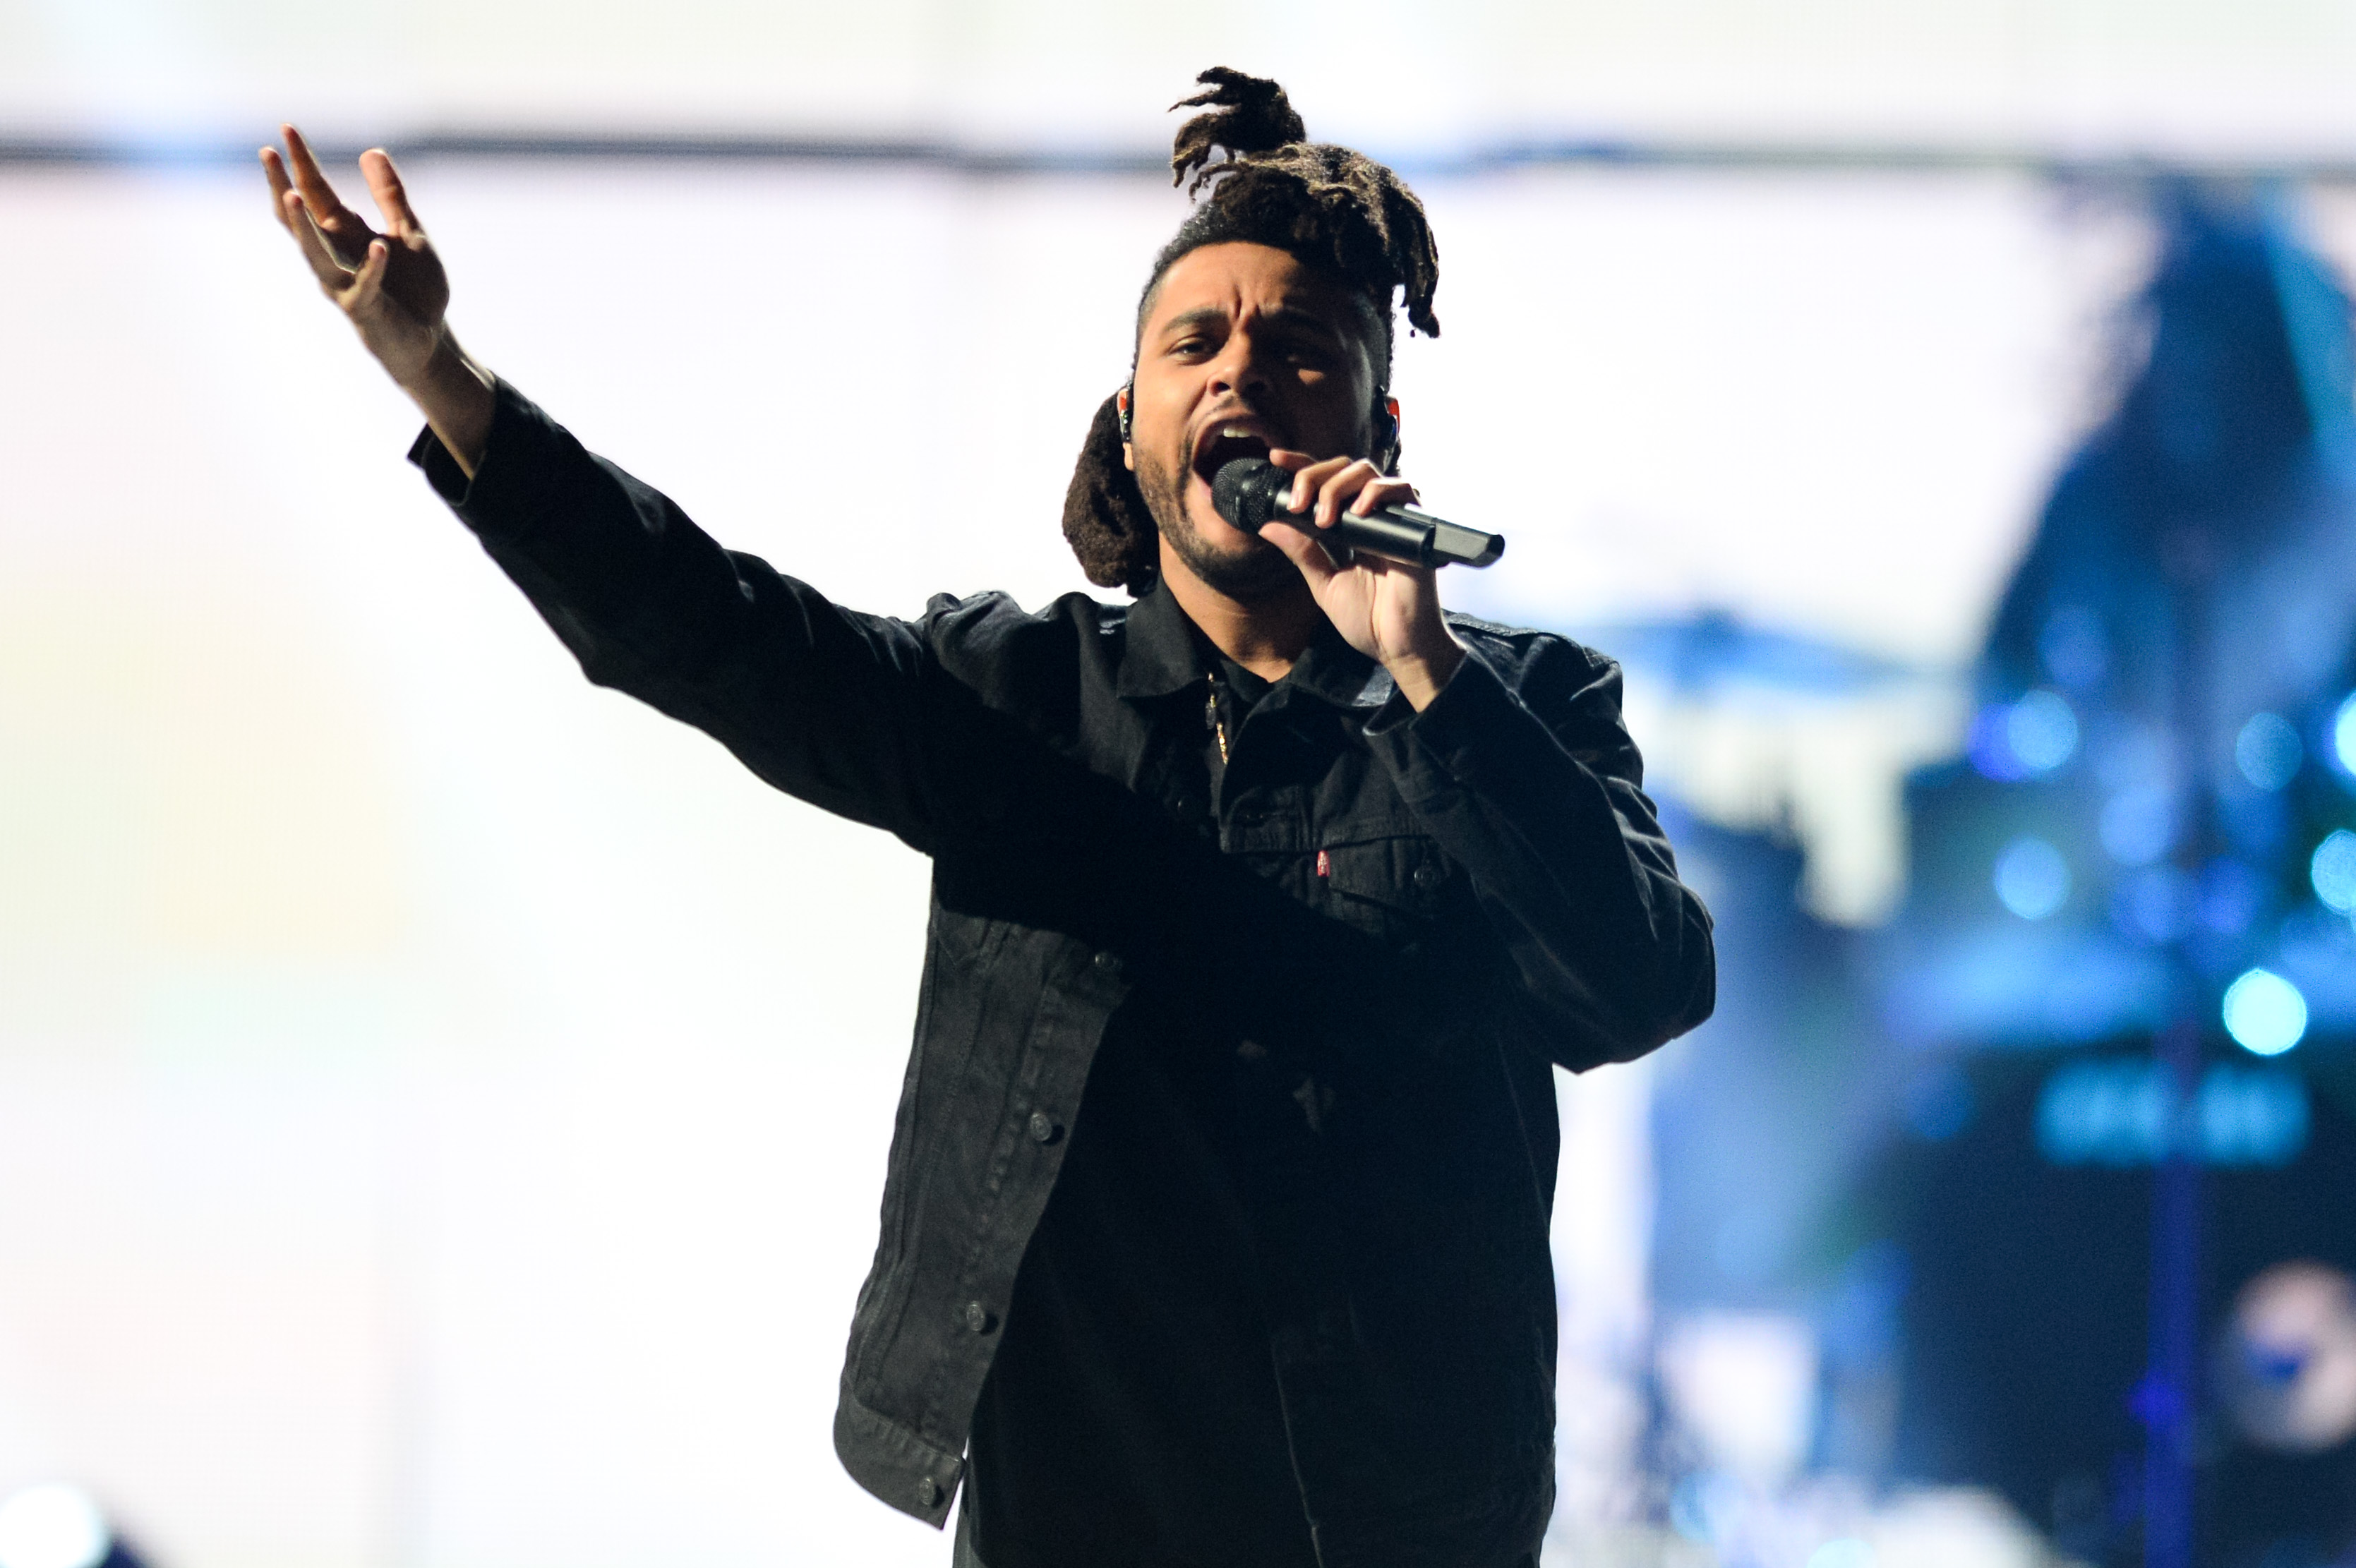 The Weeknd performs at Day 2 of the 2015 iHeartRadio Music Festival at the MGM Grand Garden Arena on  Sept. 19, 2015 in Las Vegas, NV.